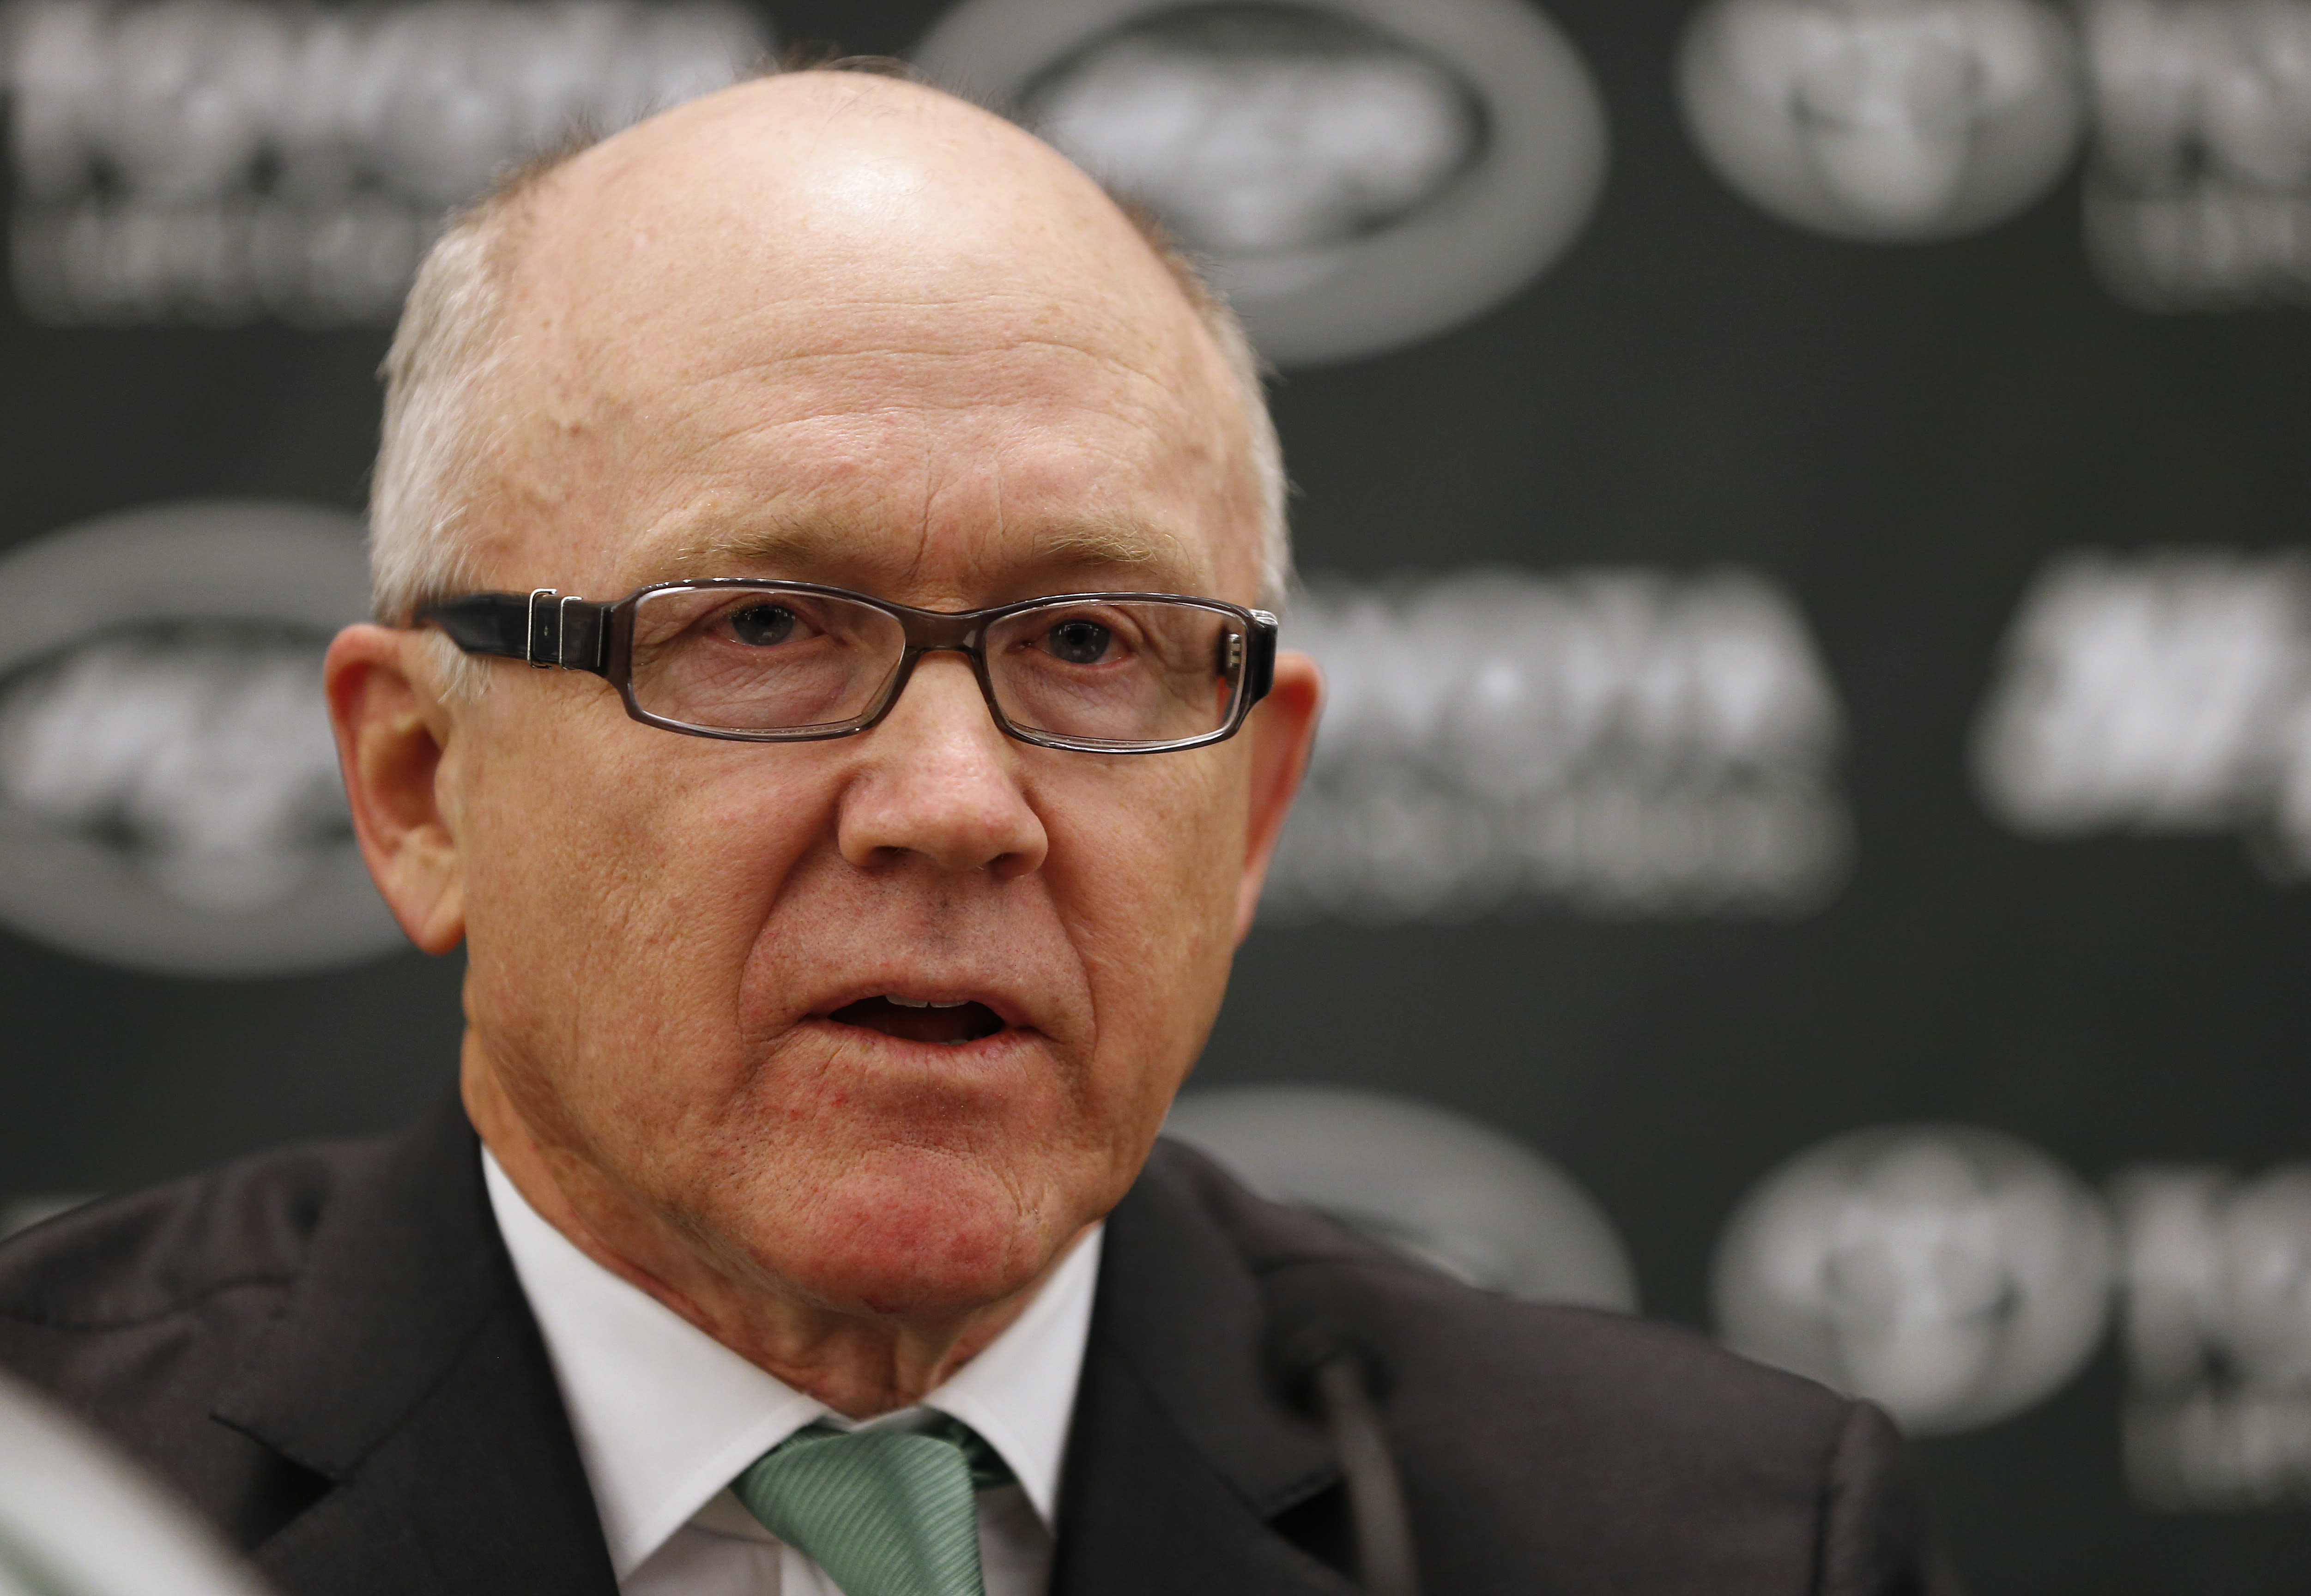 Twitter Reacts To Trump's Appointment Of Woody Johnson